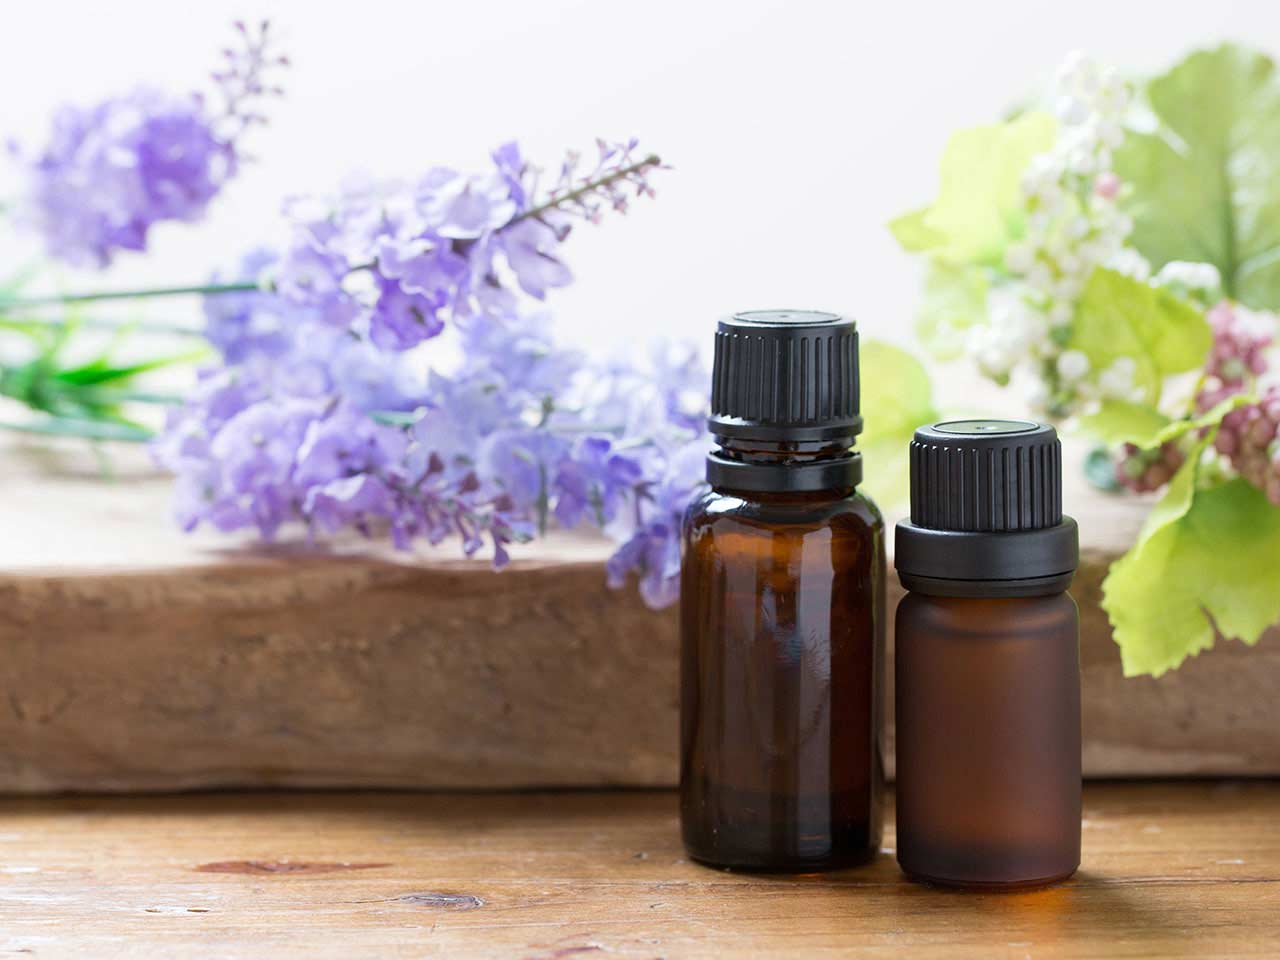 Aromatheraphy bottles on wooden table